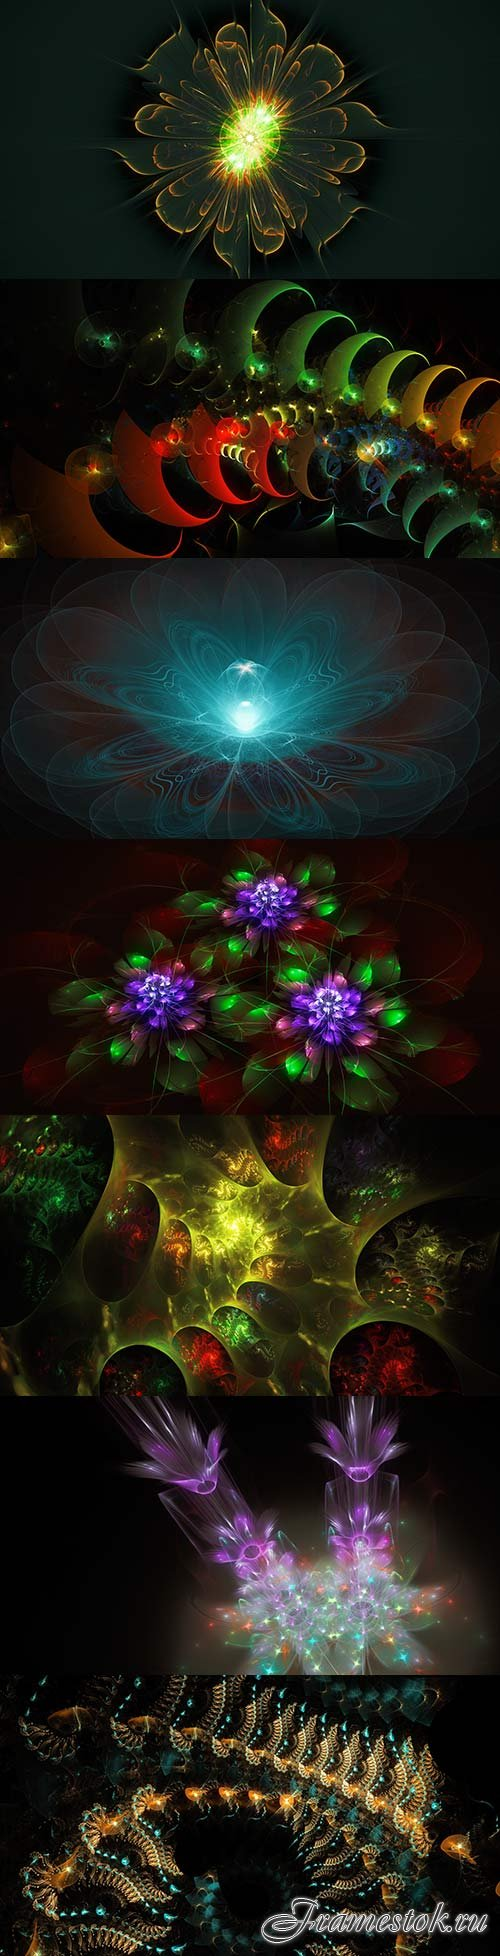 Extraterrestrial world of fractals - 4